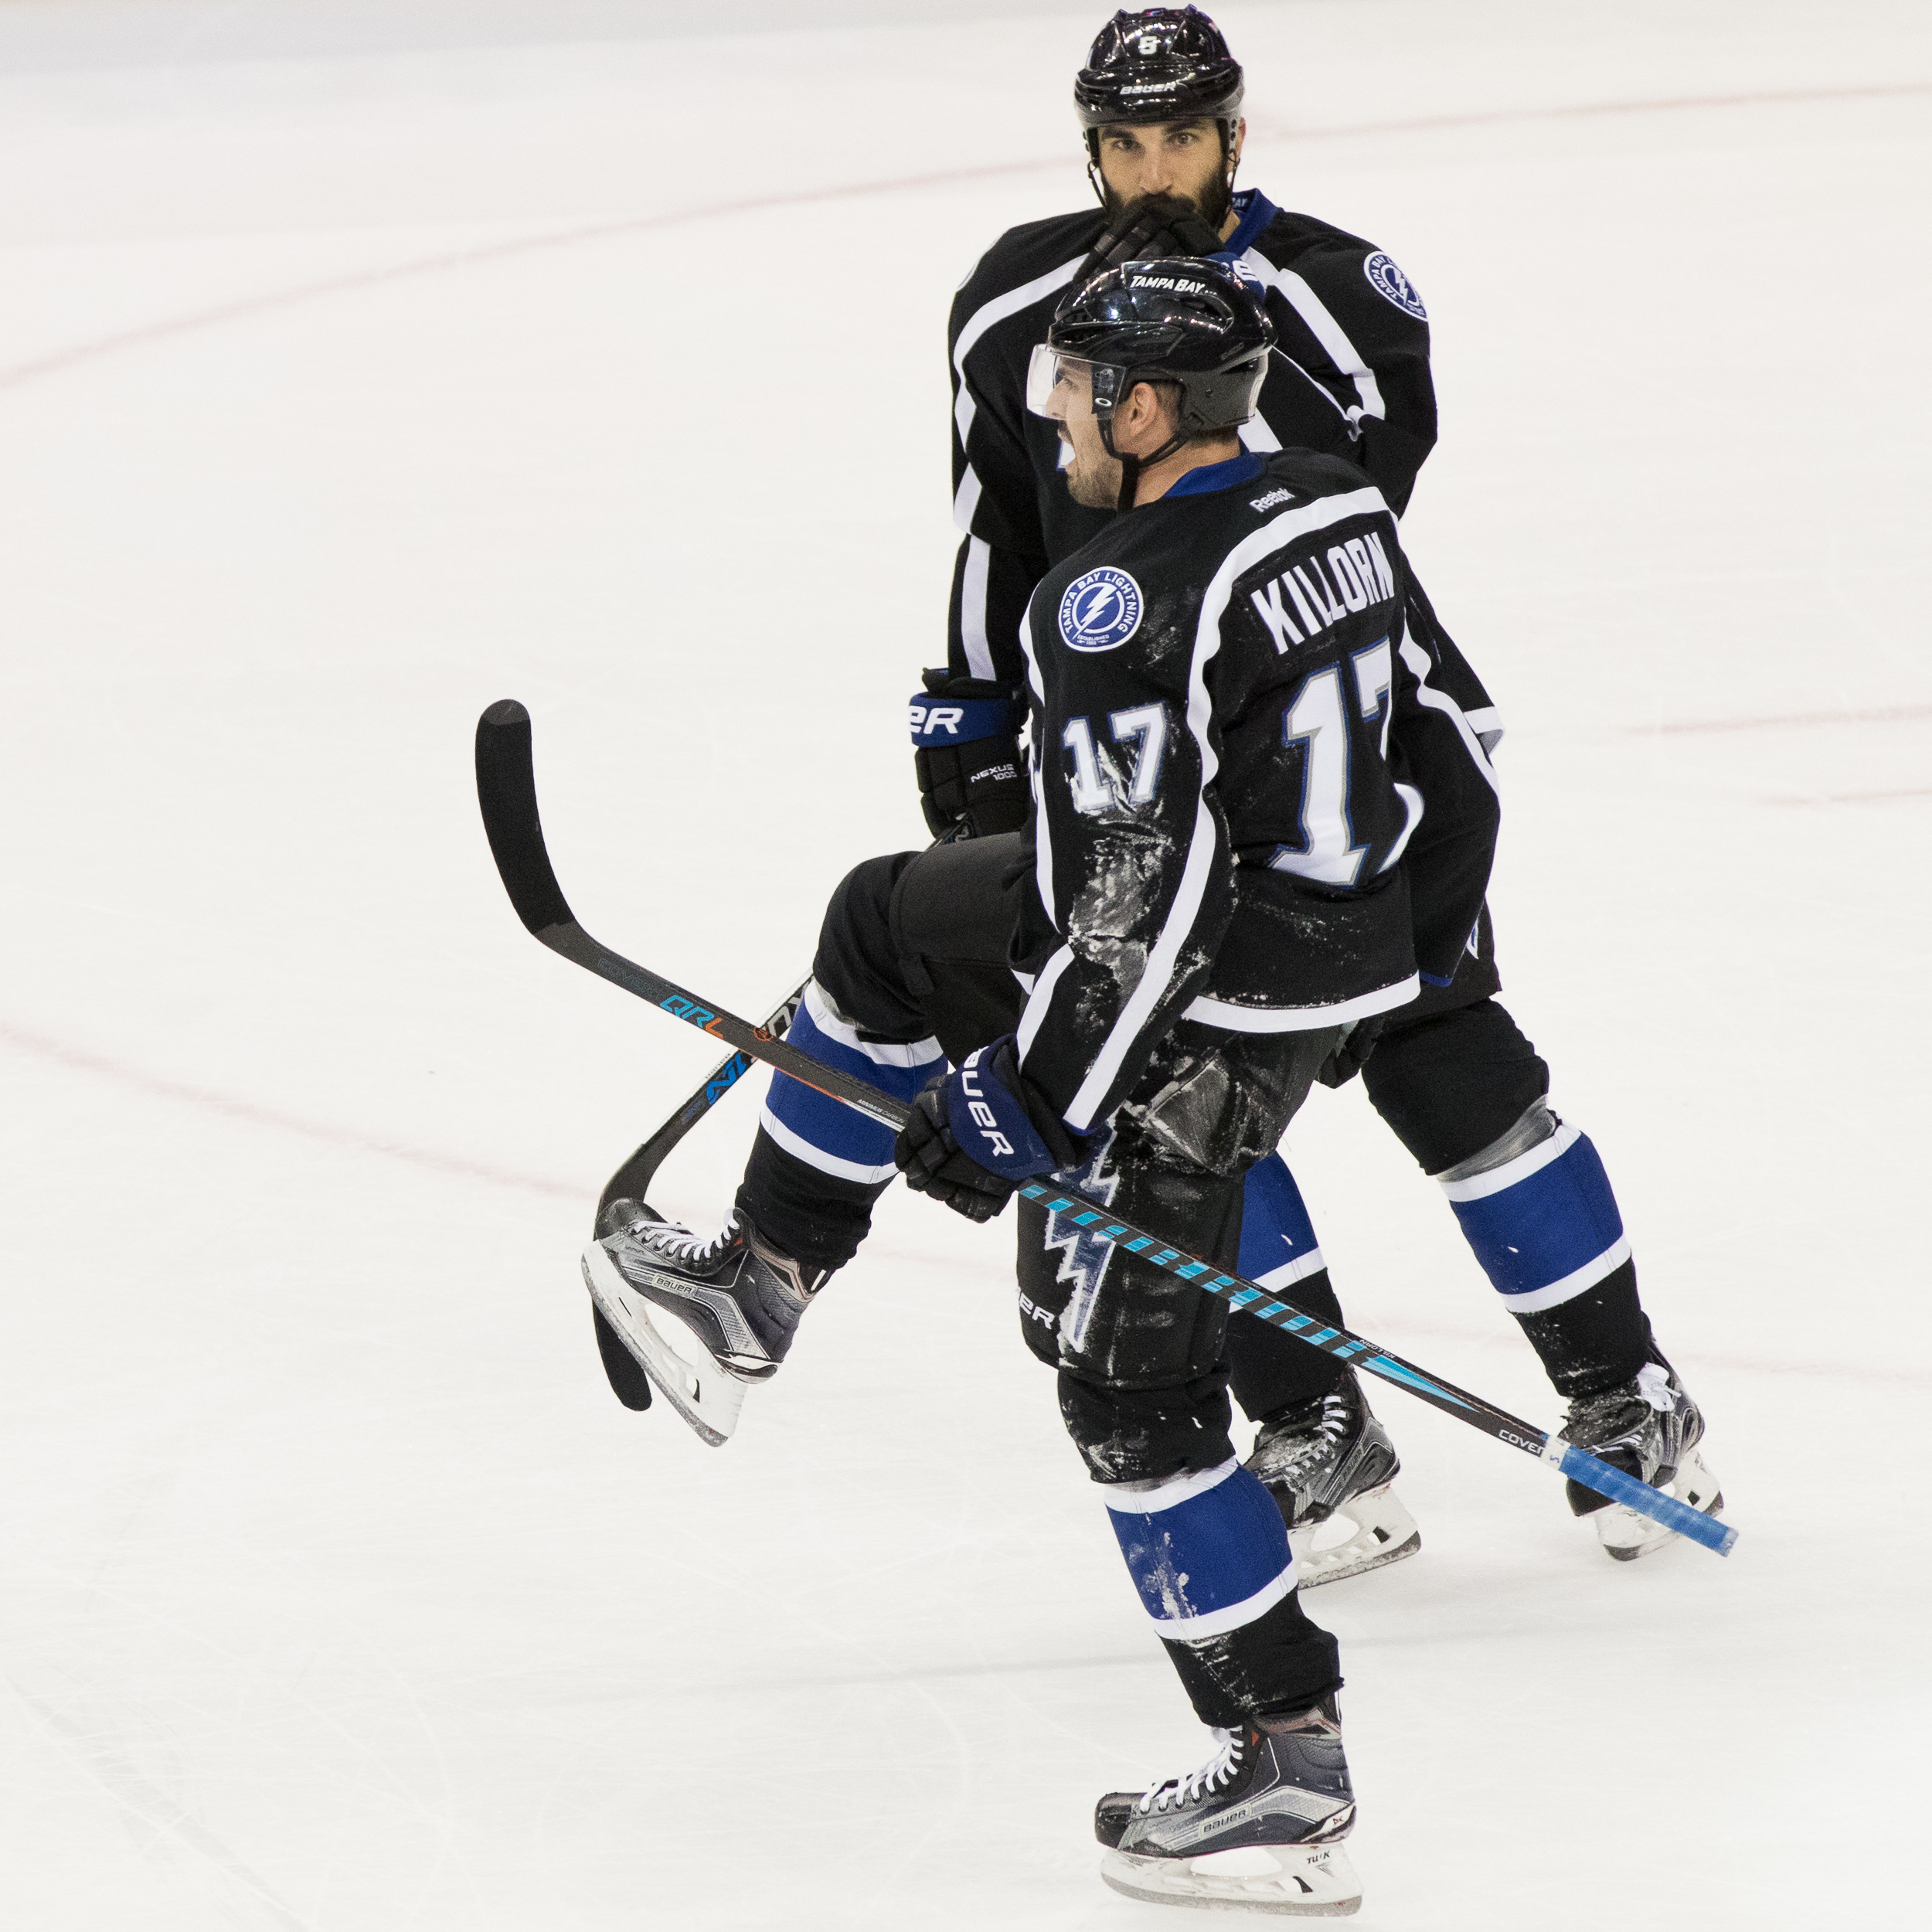 Alex Killorn celebrates after scoring to tie the game./Steven Muncie